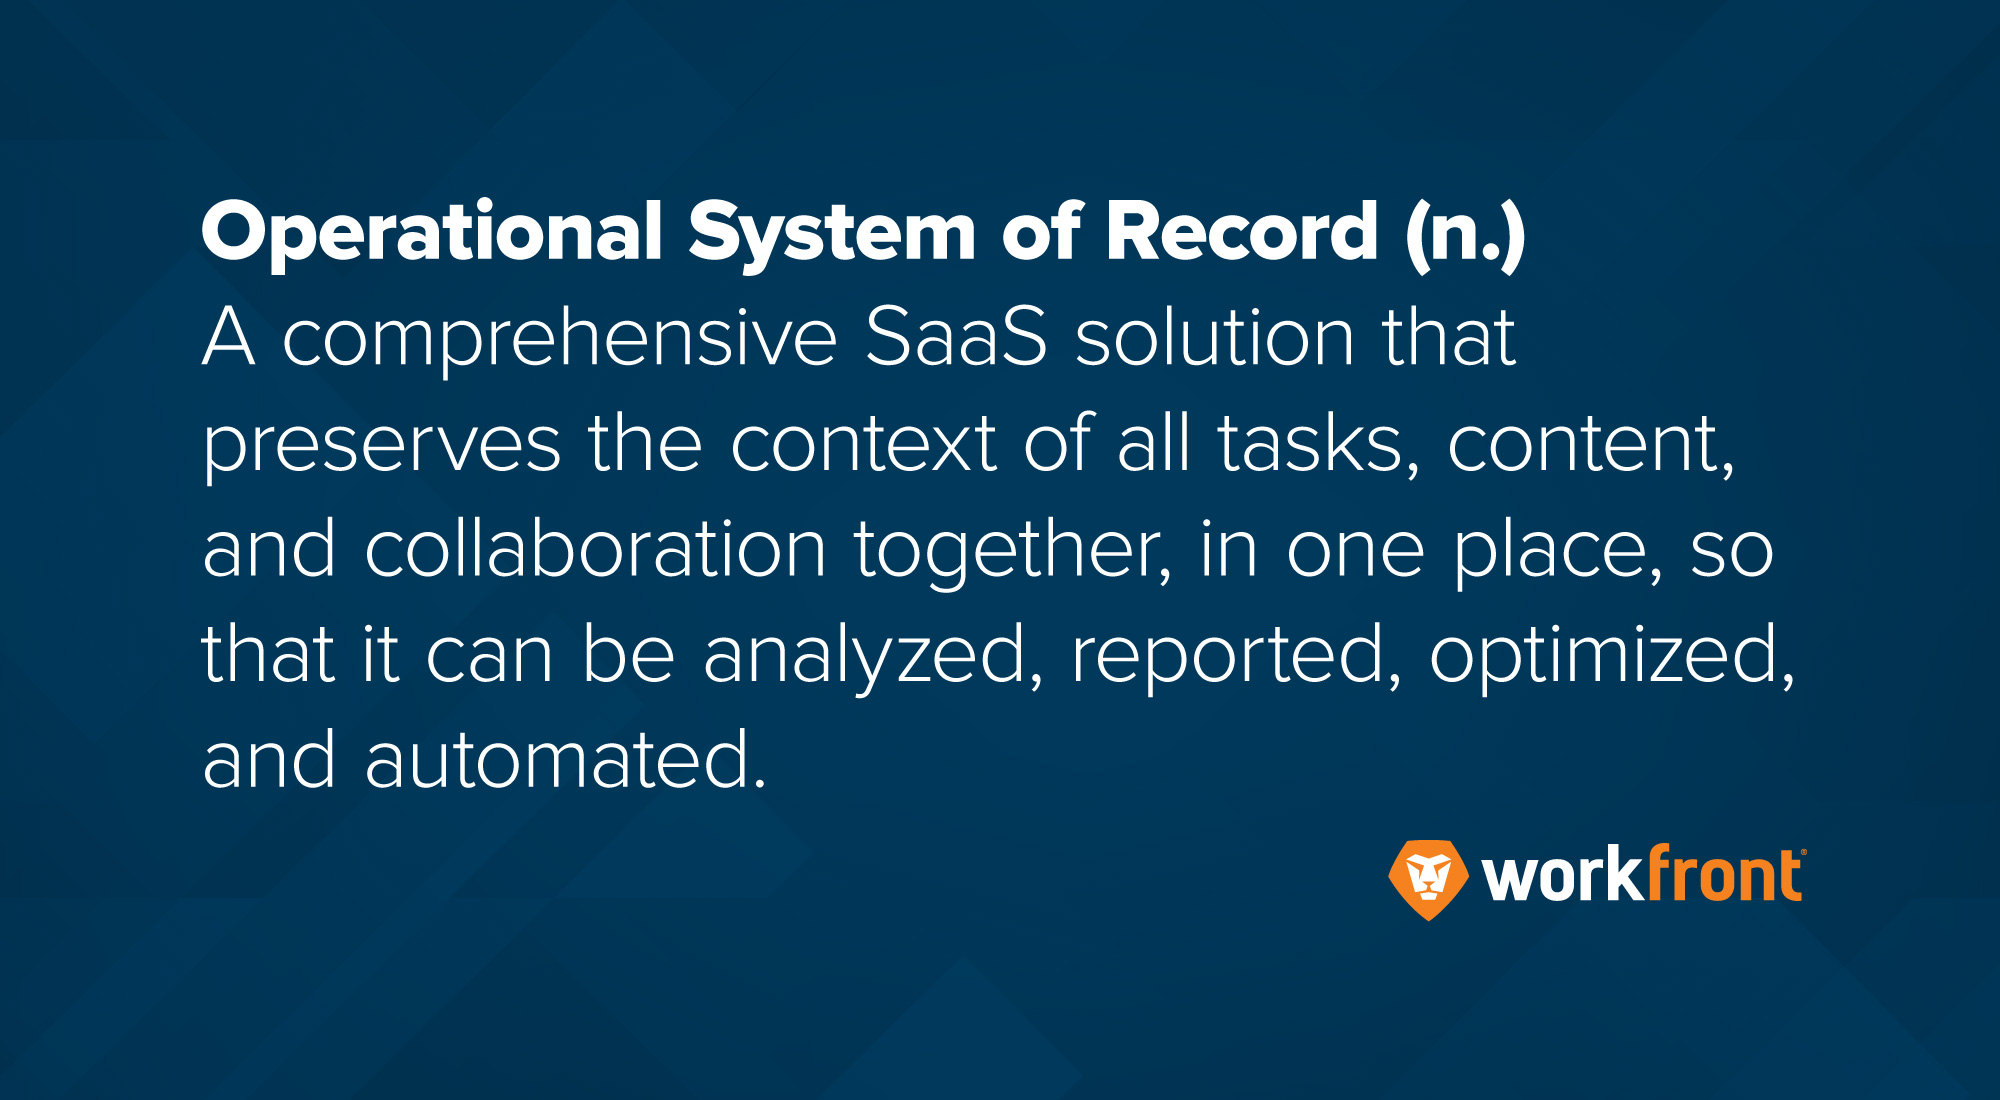 operational system of record definition